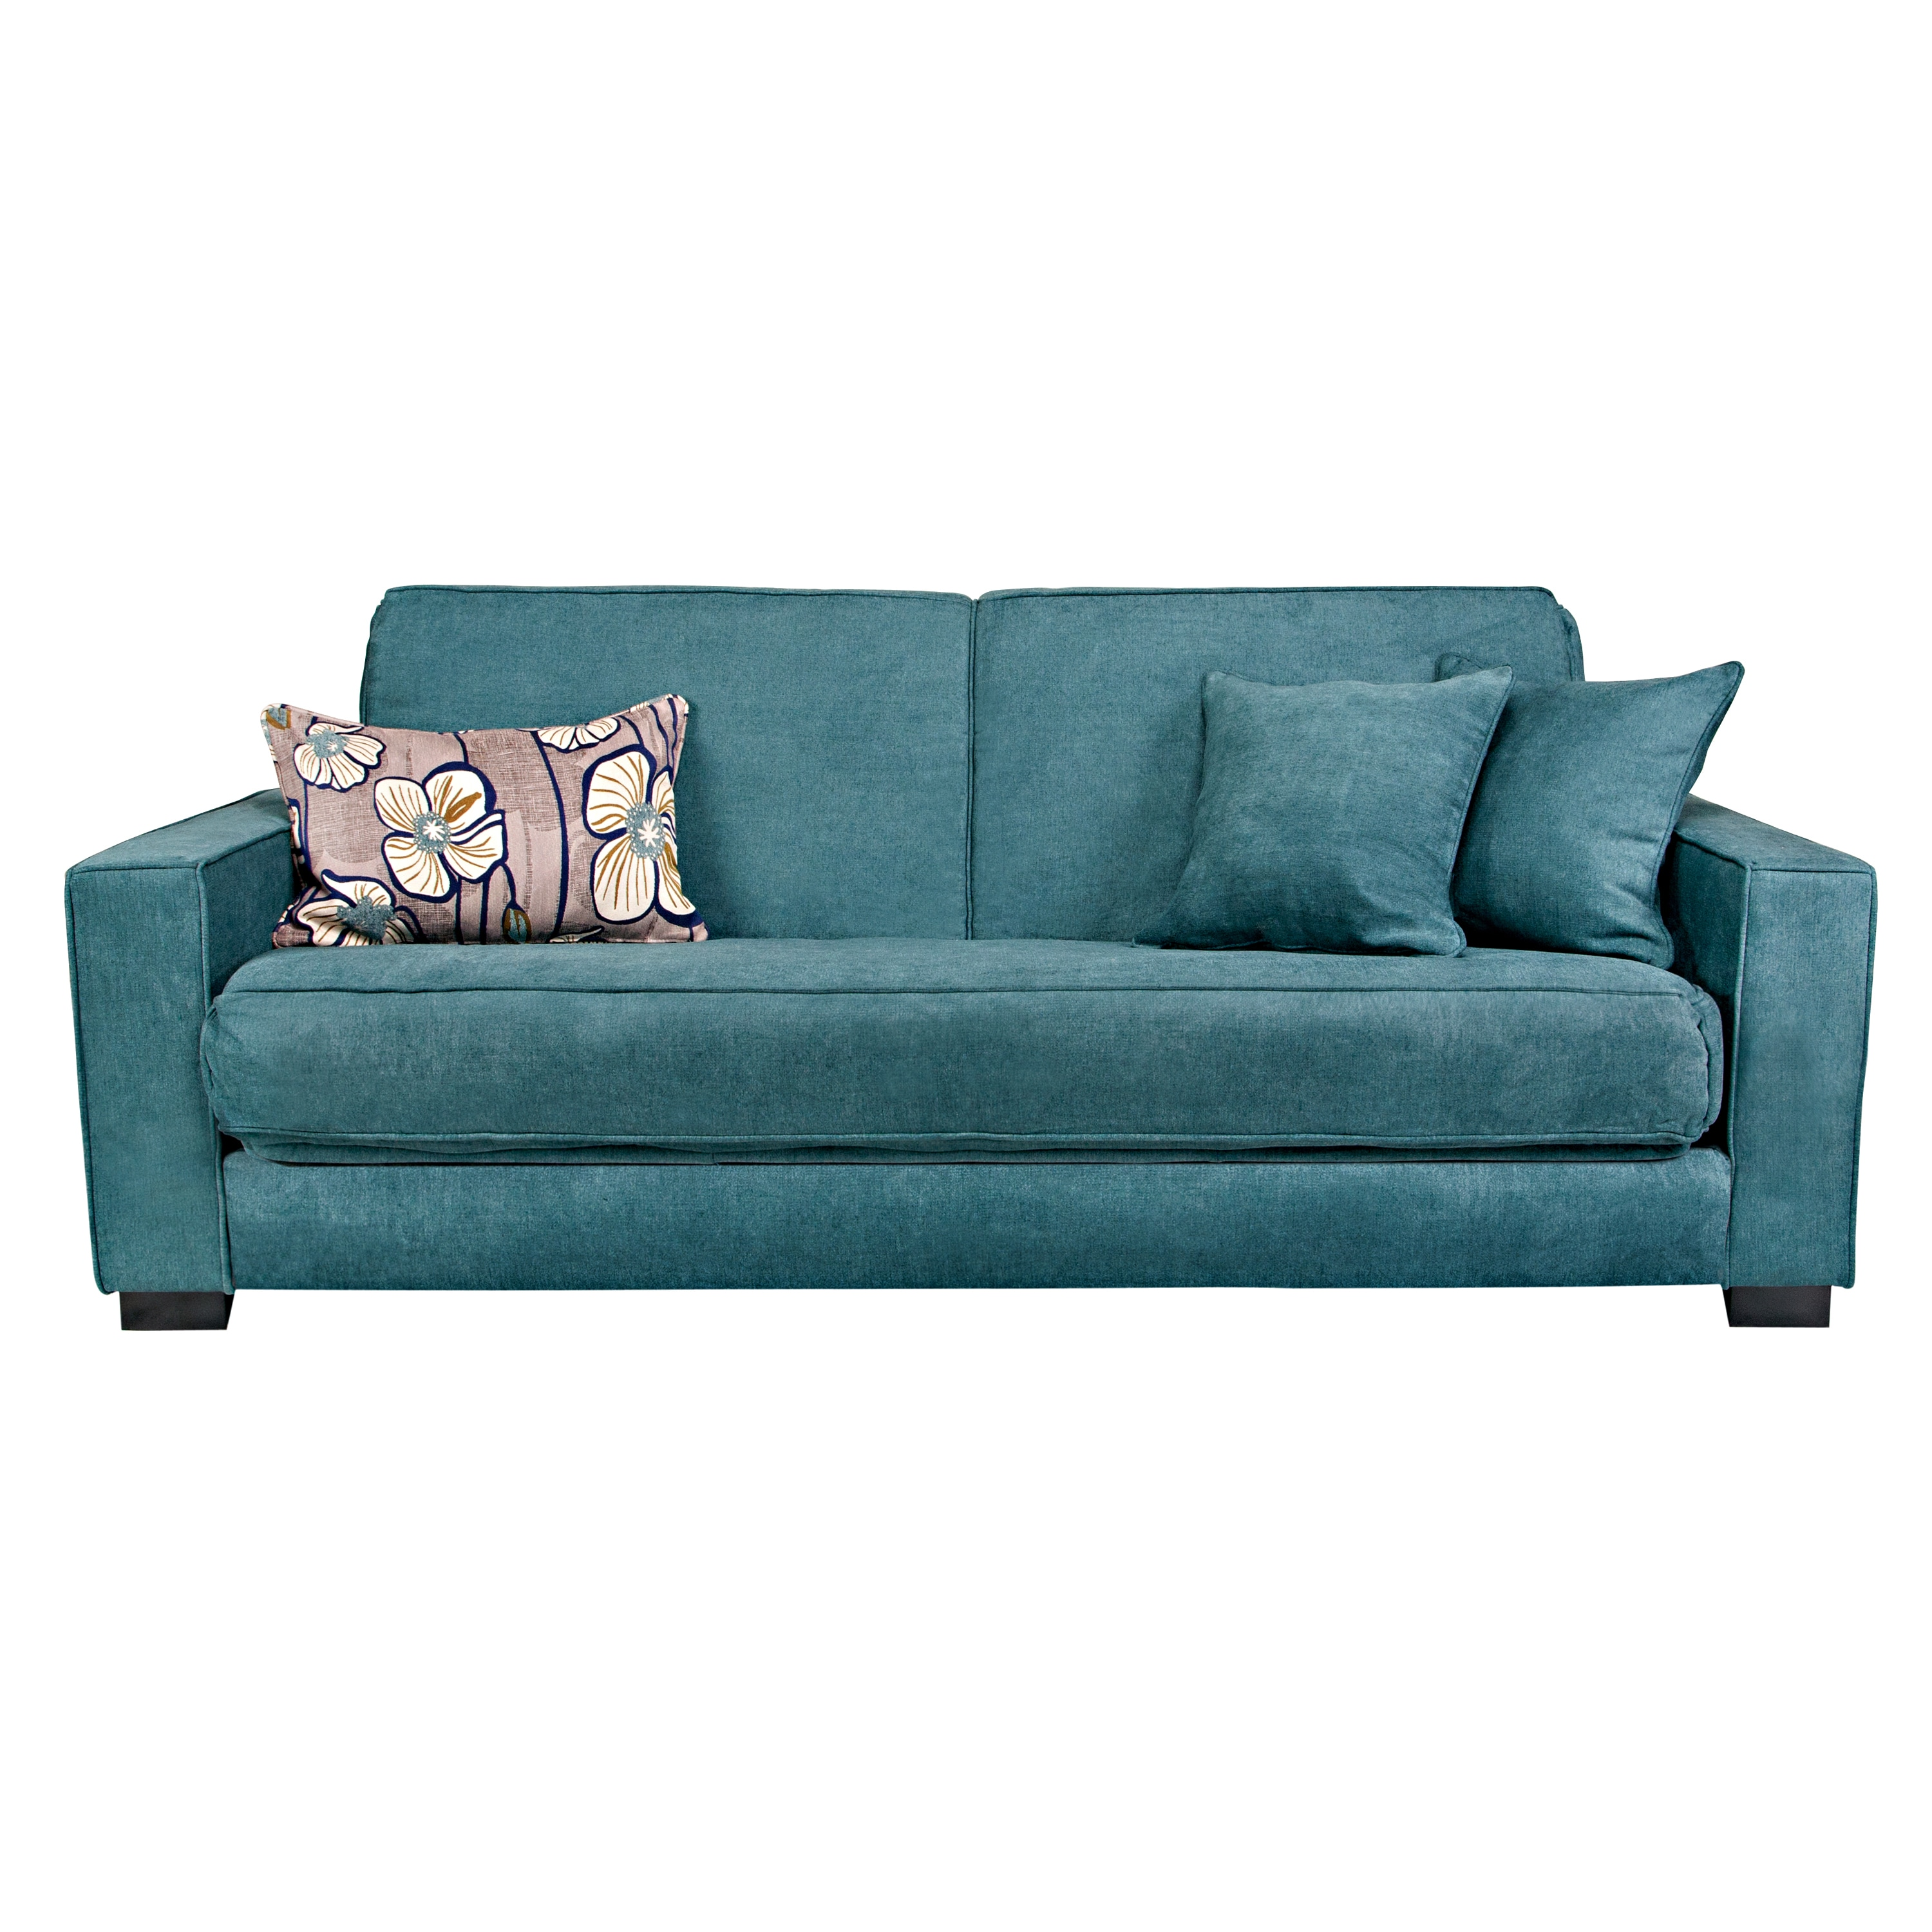 grayson sofa bed l shape set designs in hyderabad angelo home parisian teal blue convert a couch